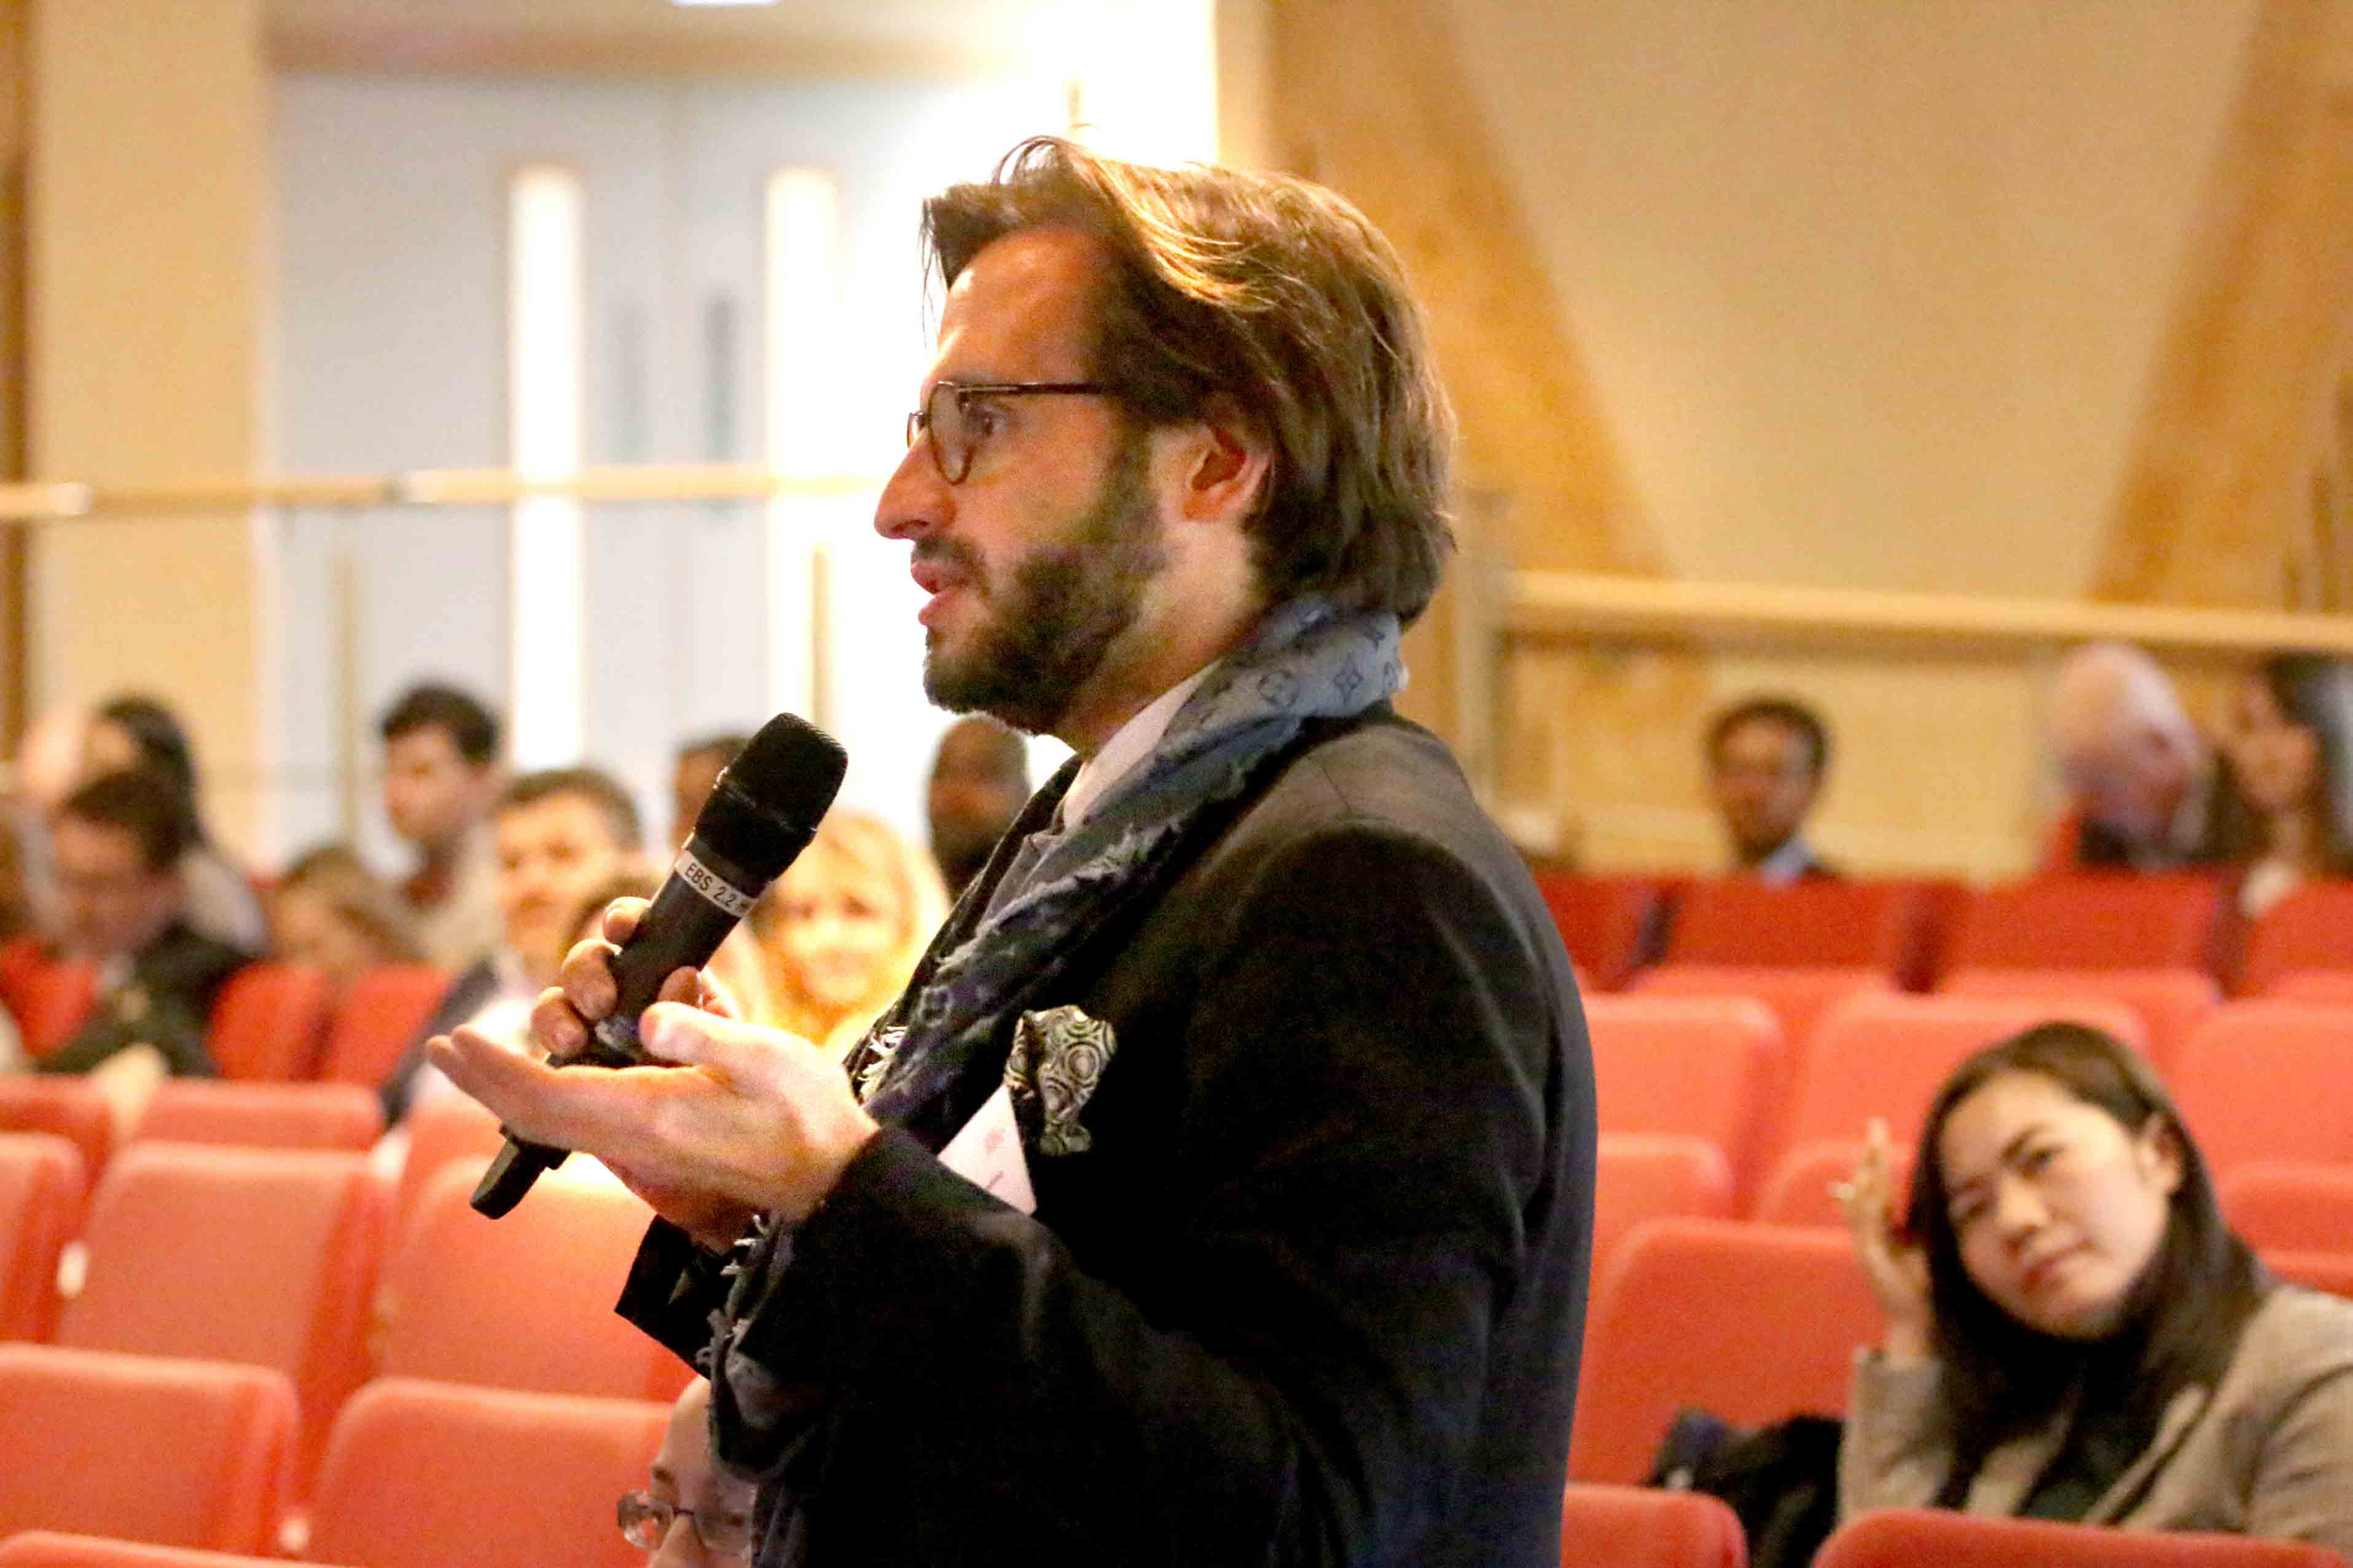 Conference attendee Alessandro Merendino